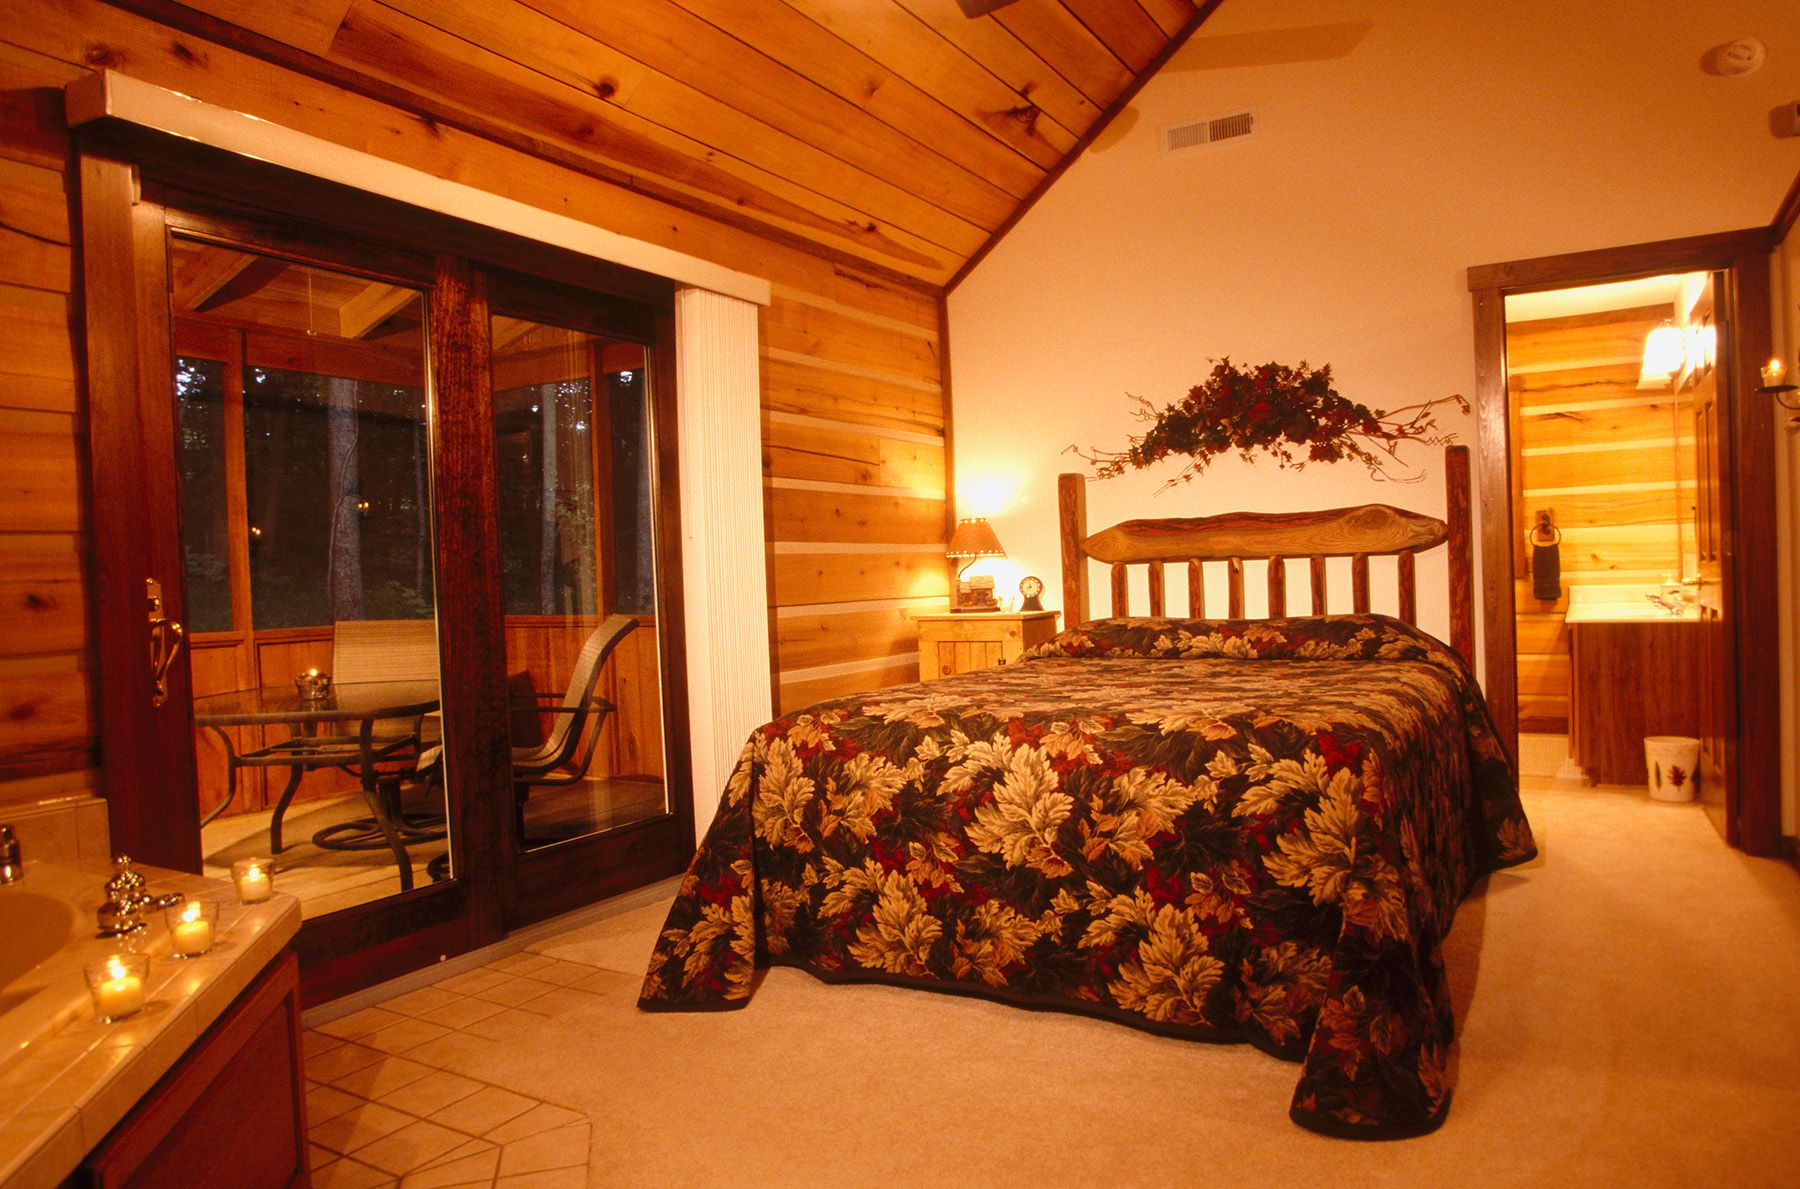 Bedroom area at Cabins & Candlelight